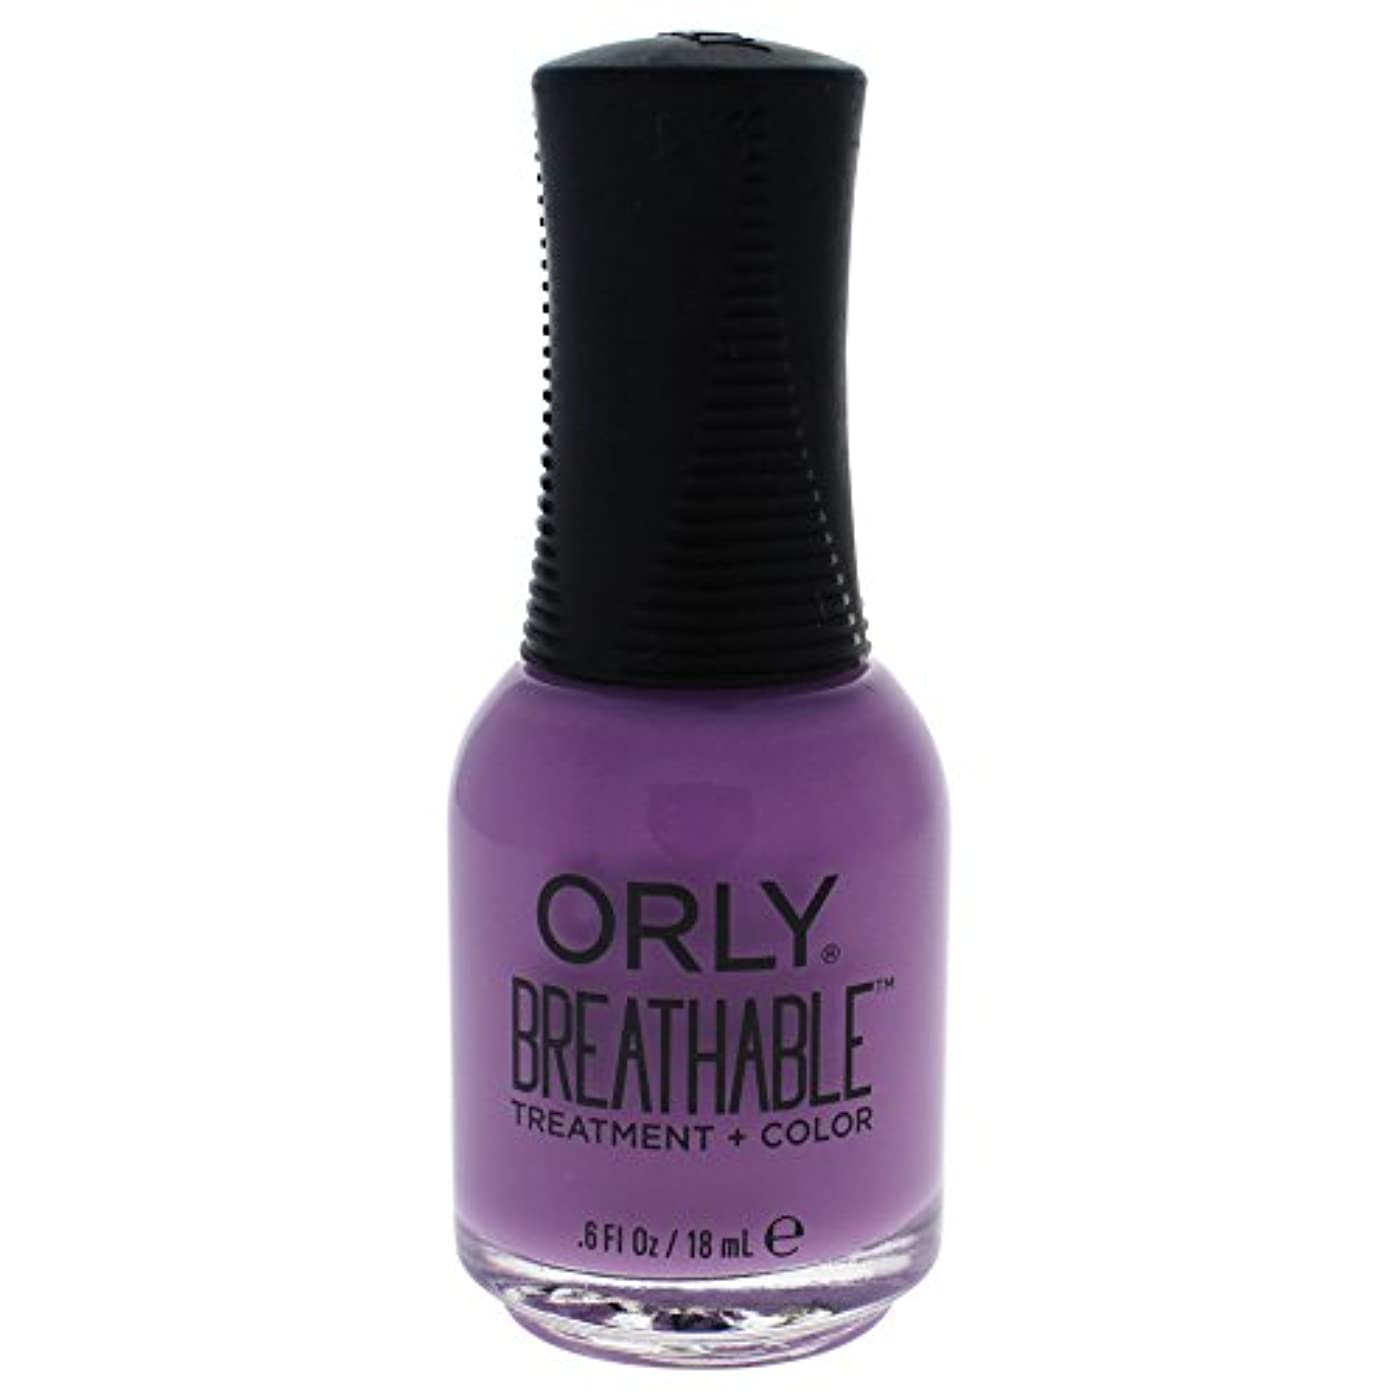 Orly Breathable Treatment + Color Nail Lacquer - TLC - 0.6oz / 18ml